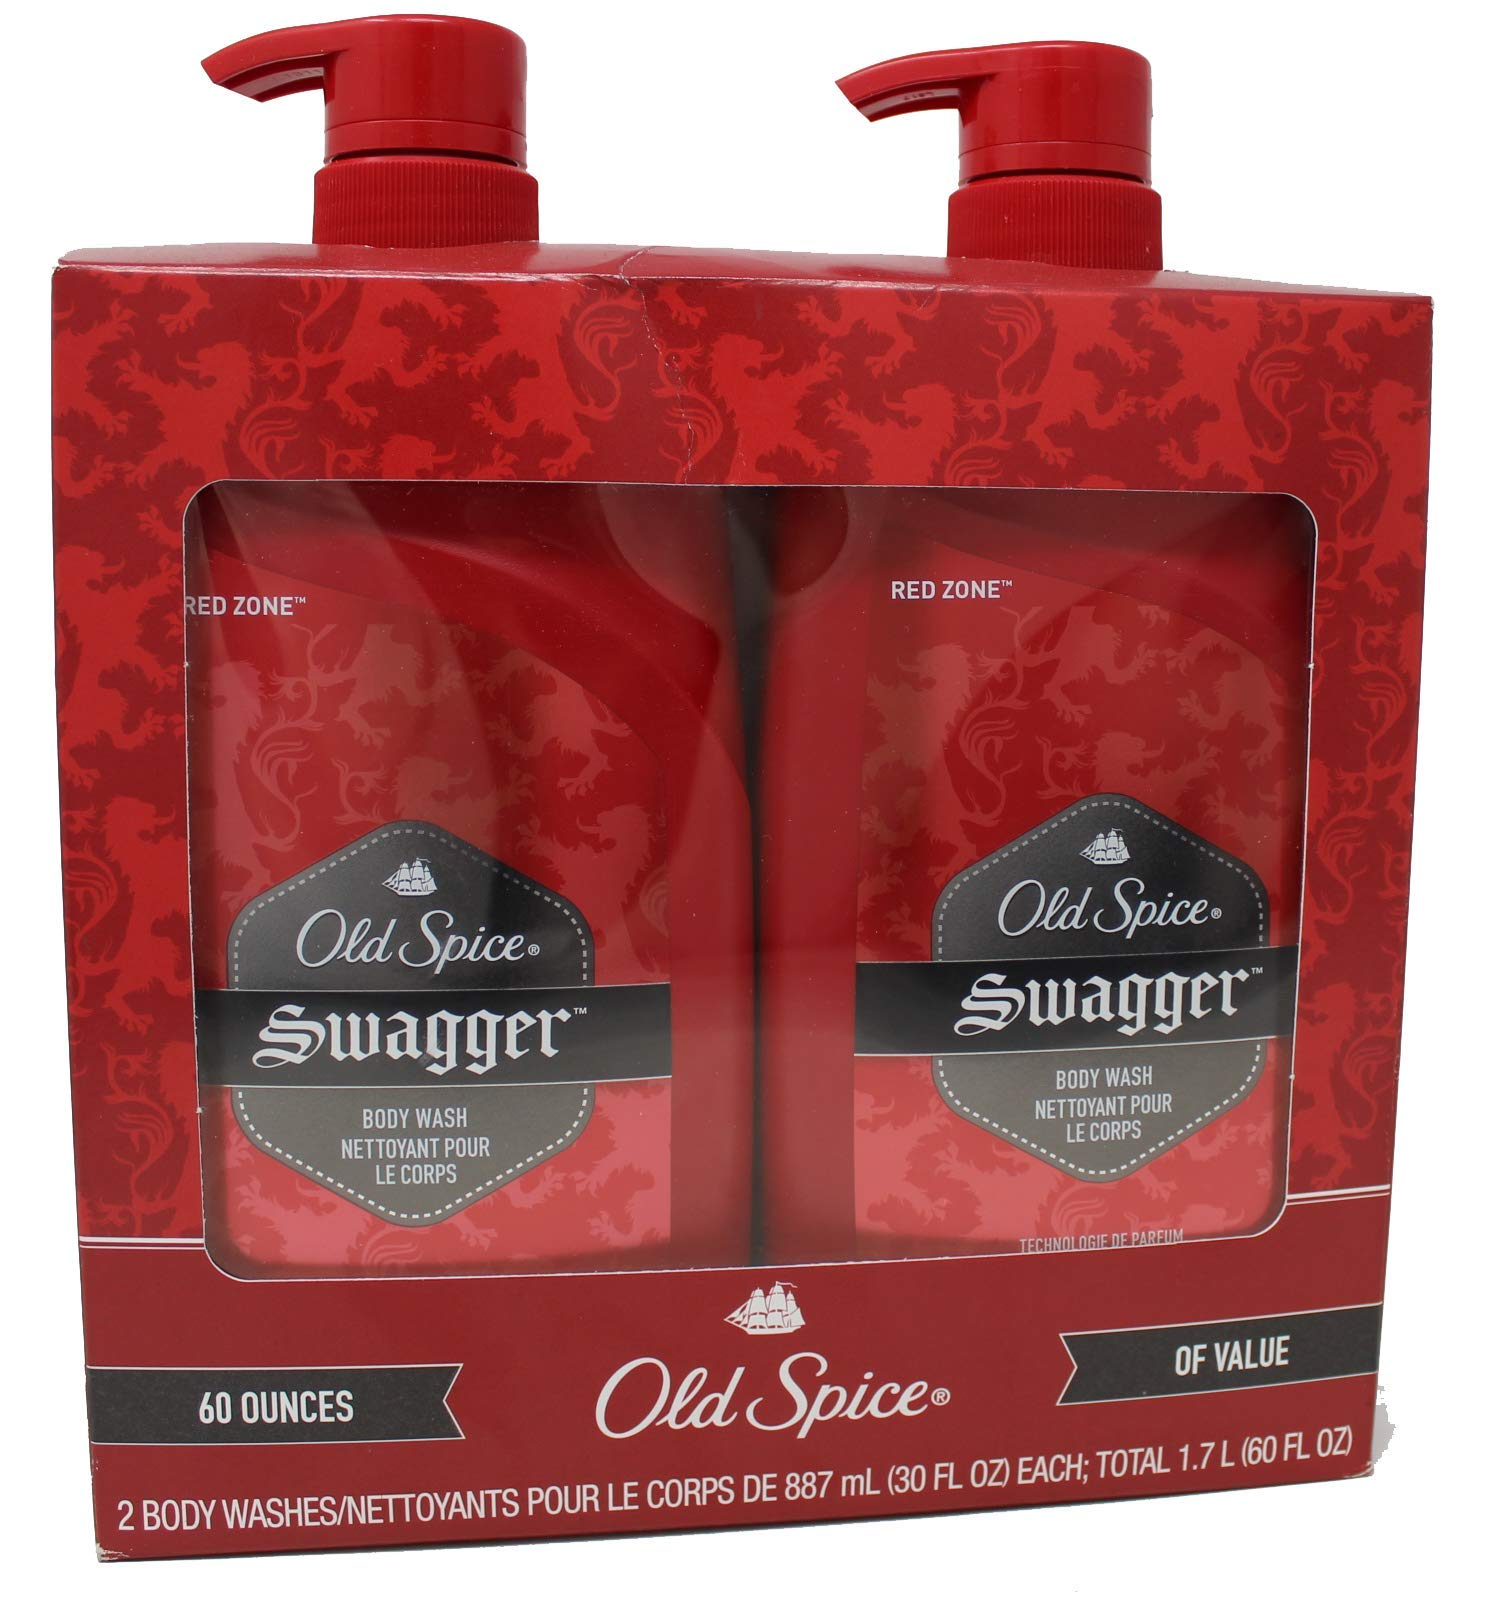 Old Spice Swagger Body Wash - Red Zone, Value Pack of 2-30 Ounce Bottles (Total 60 Ounce) by Old Spice